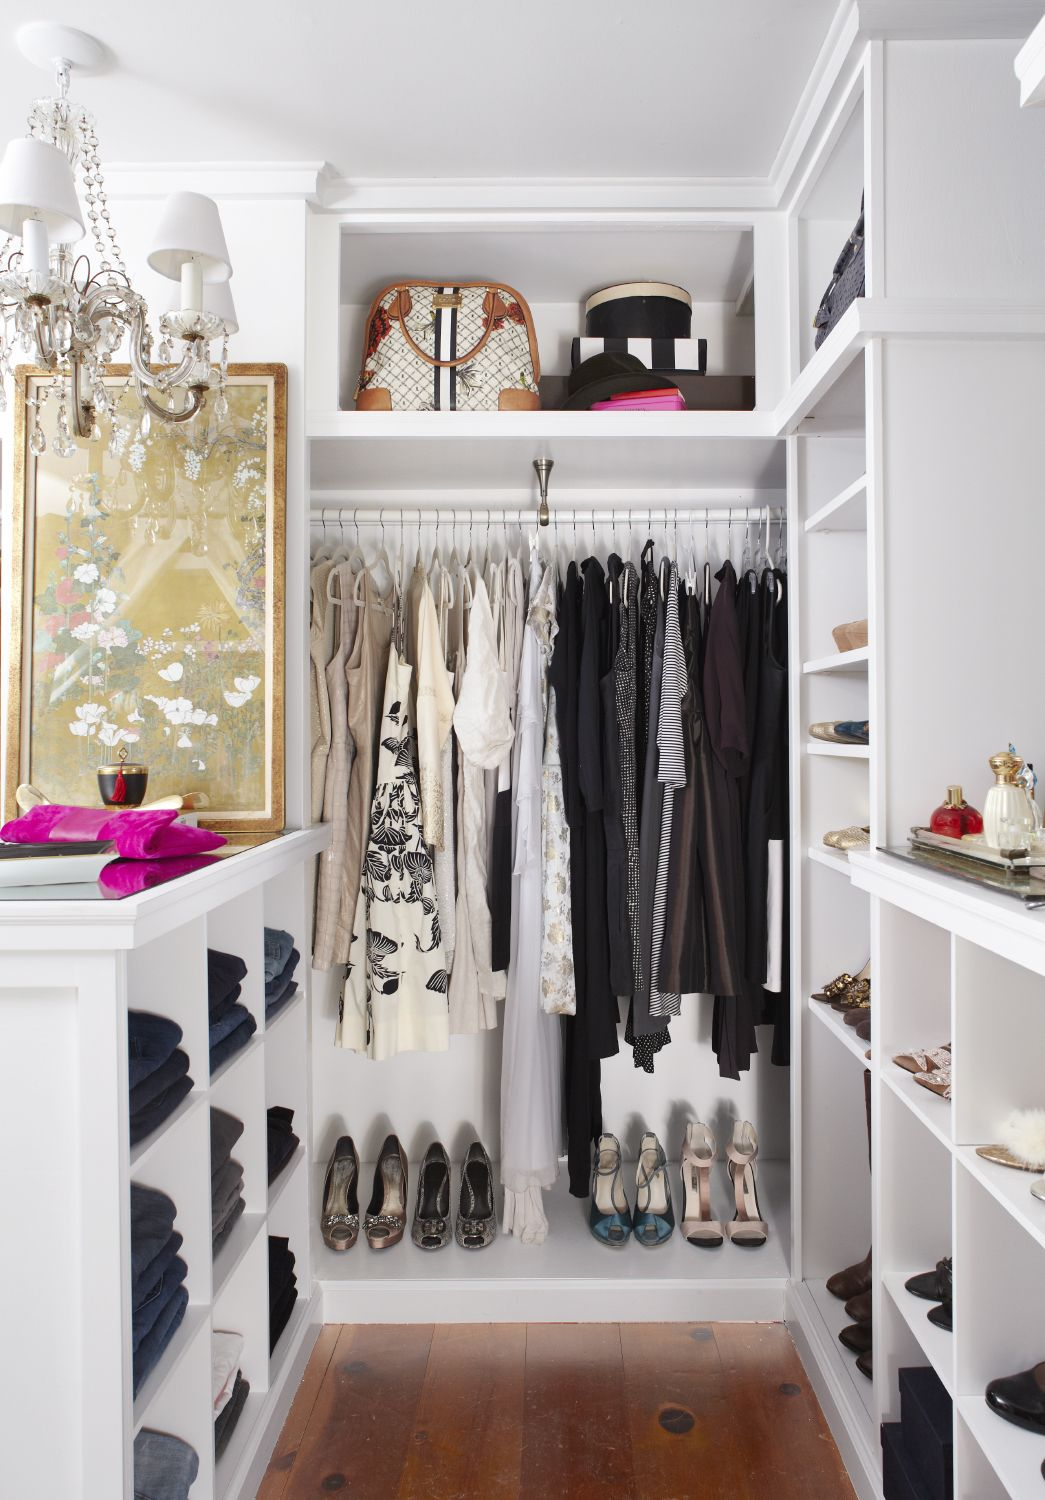 Organizing Walk In Closet Ideas Part - 17: 12 Small Walk In Closet Ideas And Organizer Designs